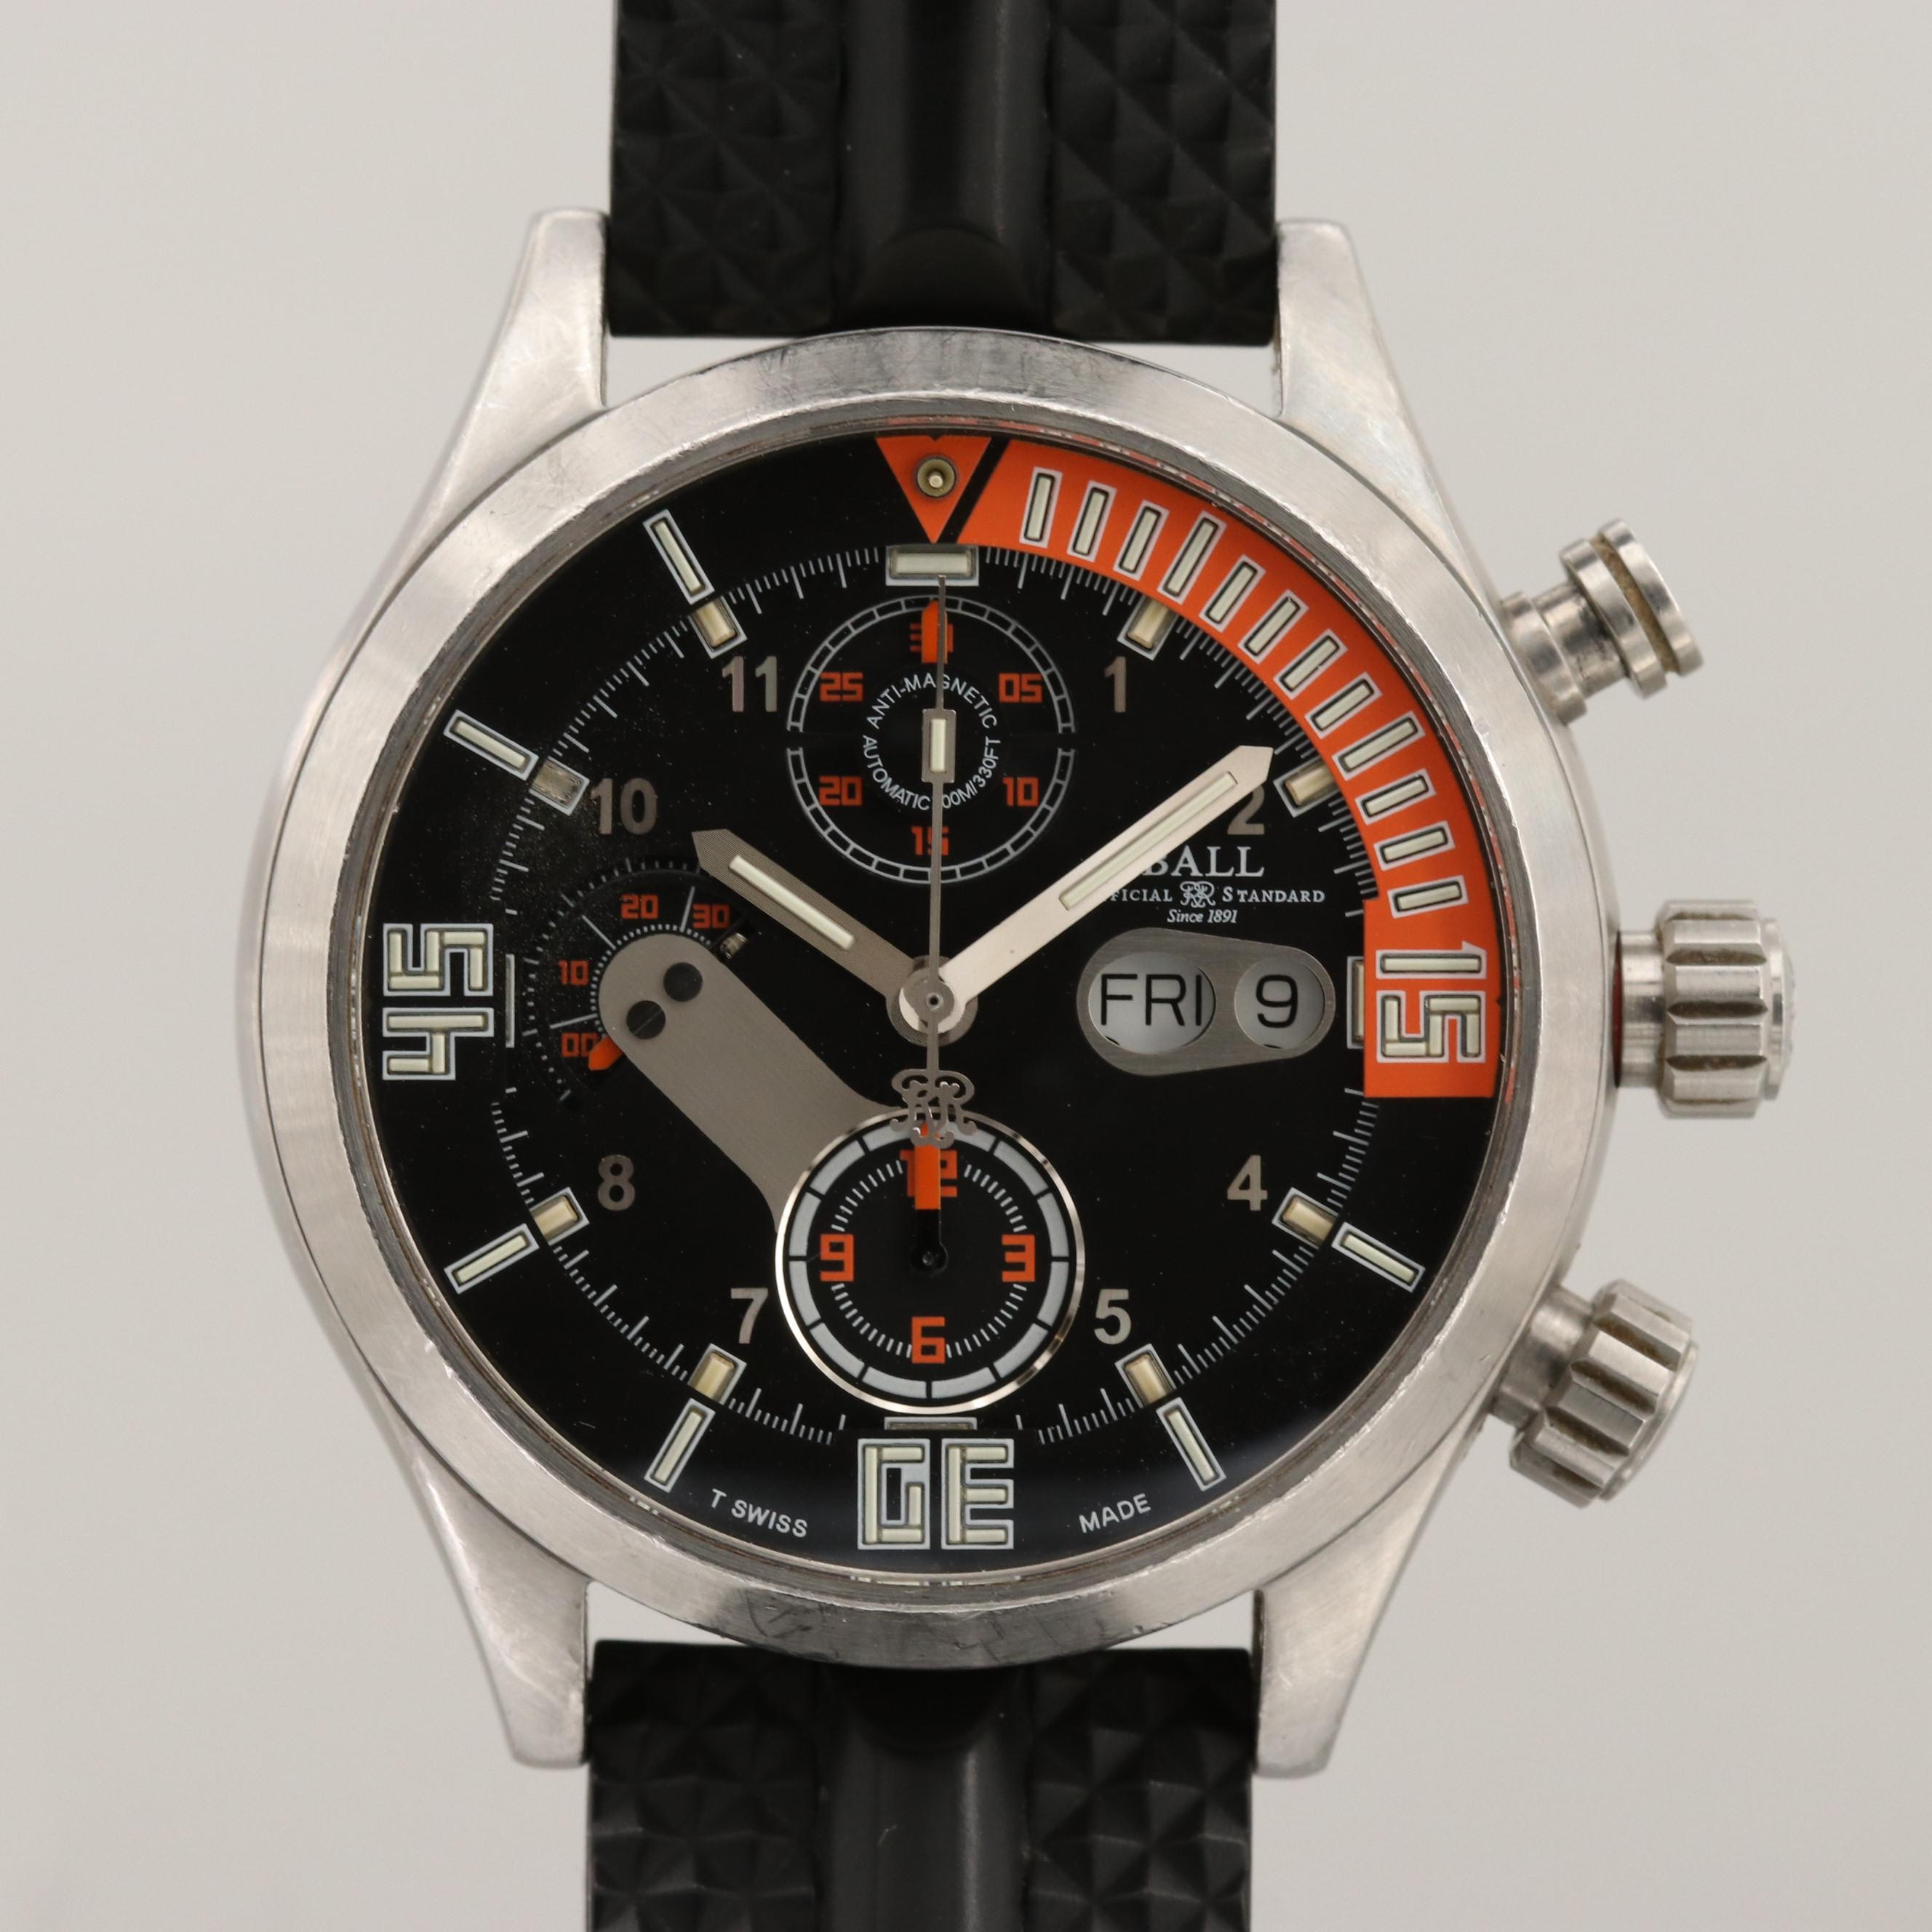 Ball Engineer Master II Diver Chronograph Automatic Wristwatch